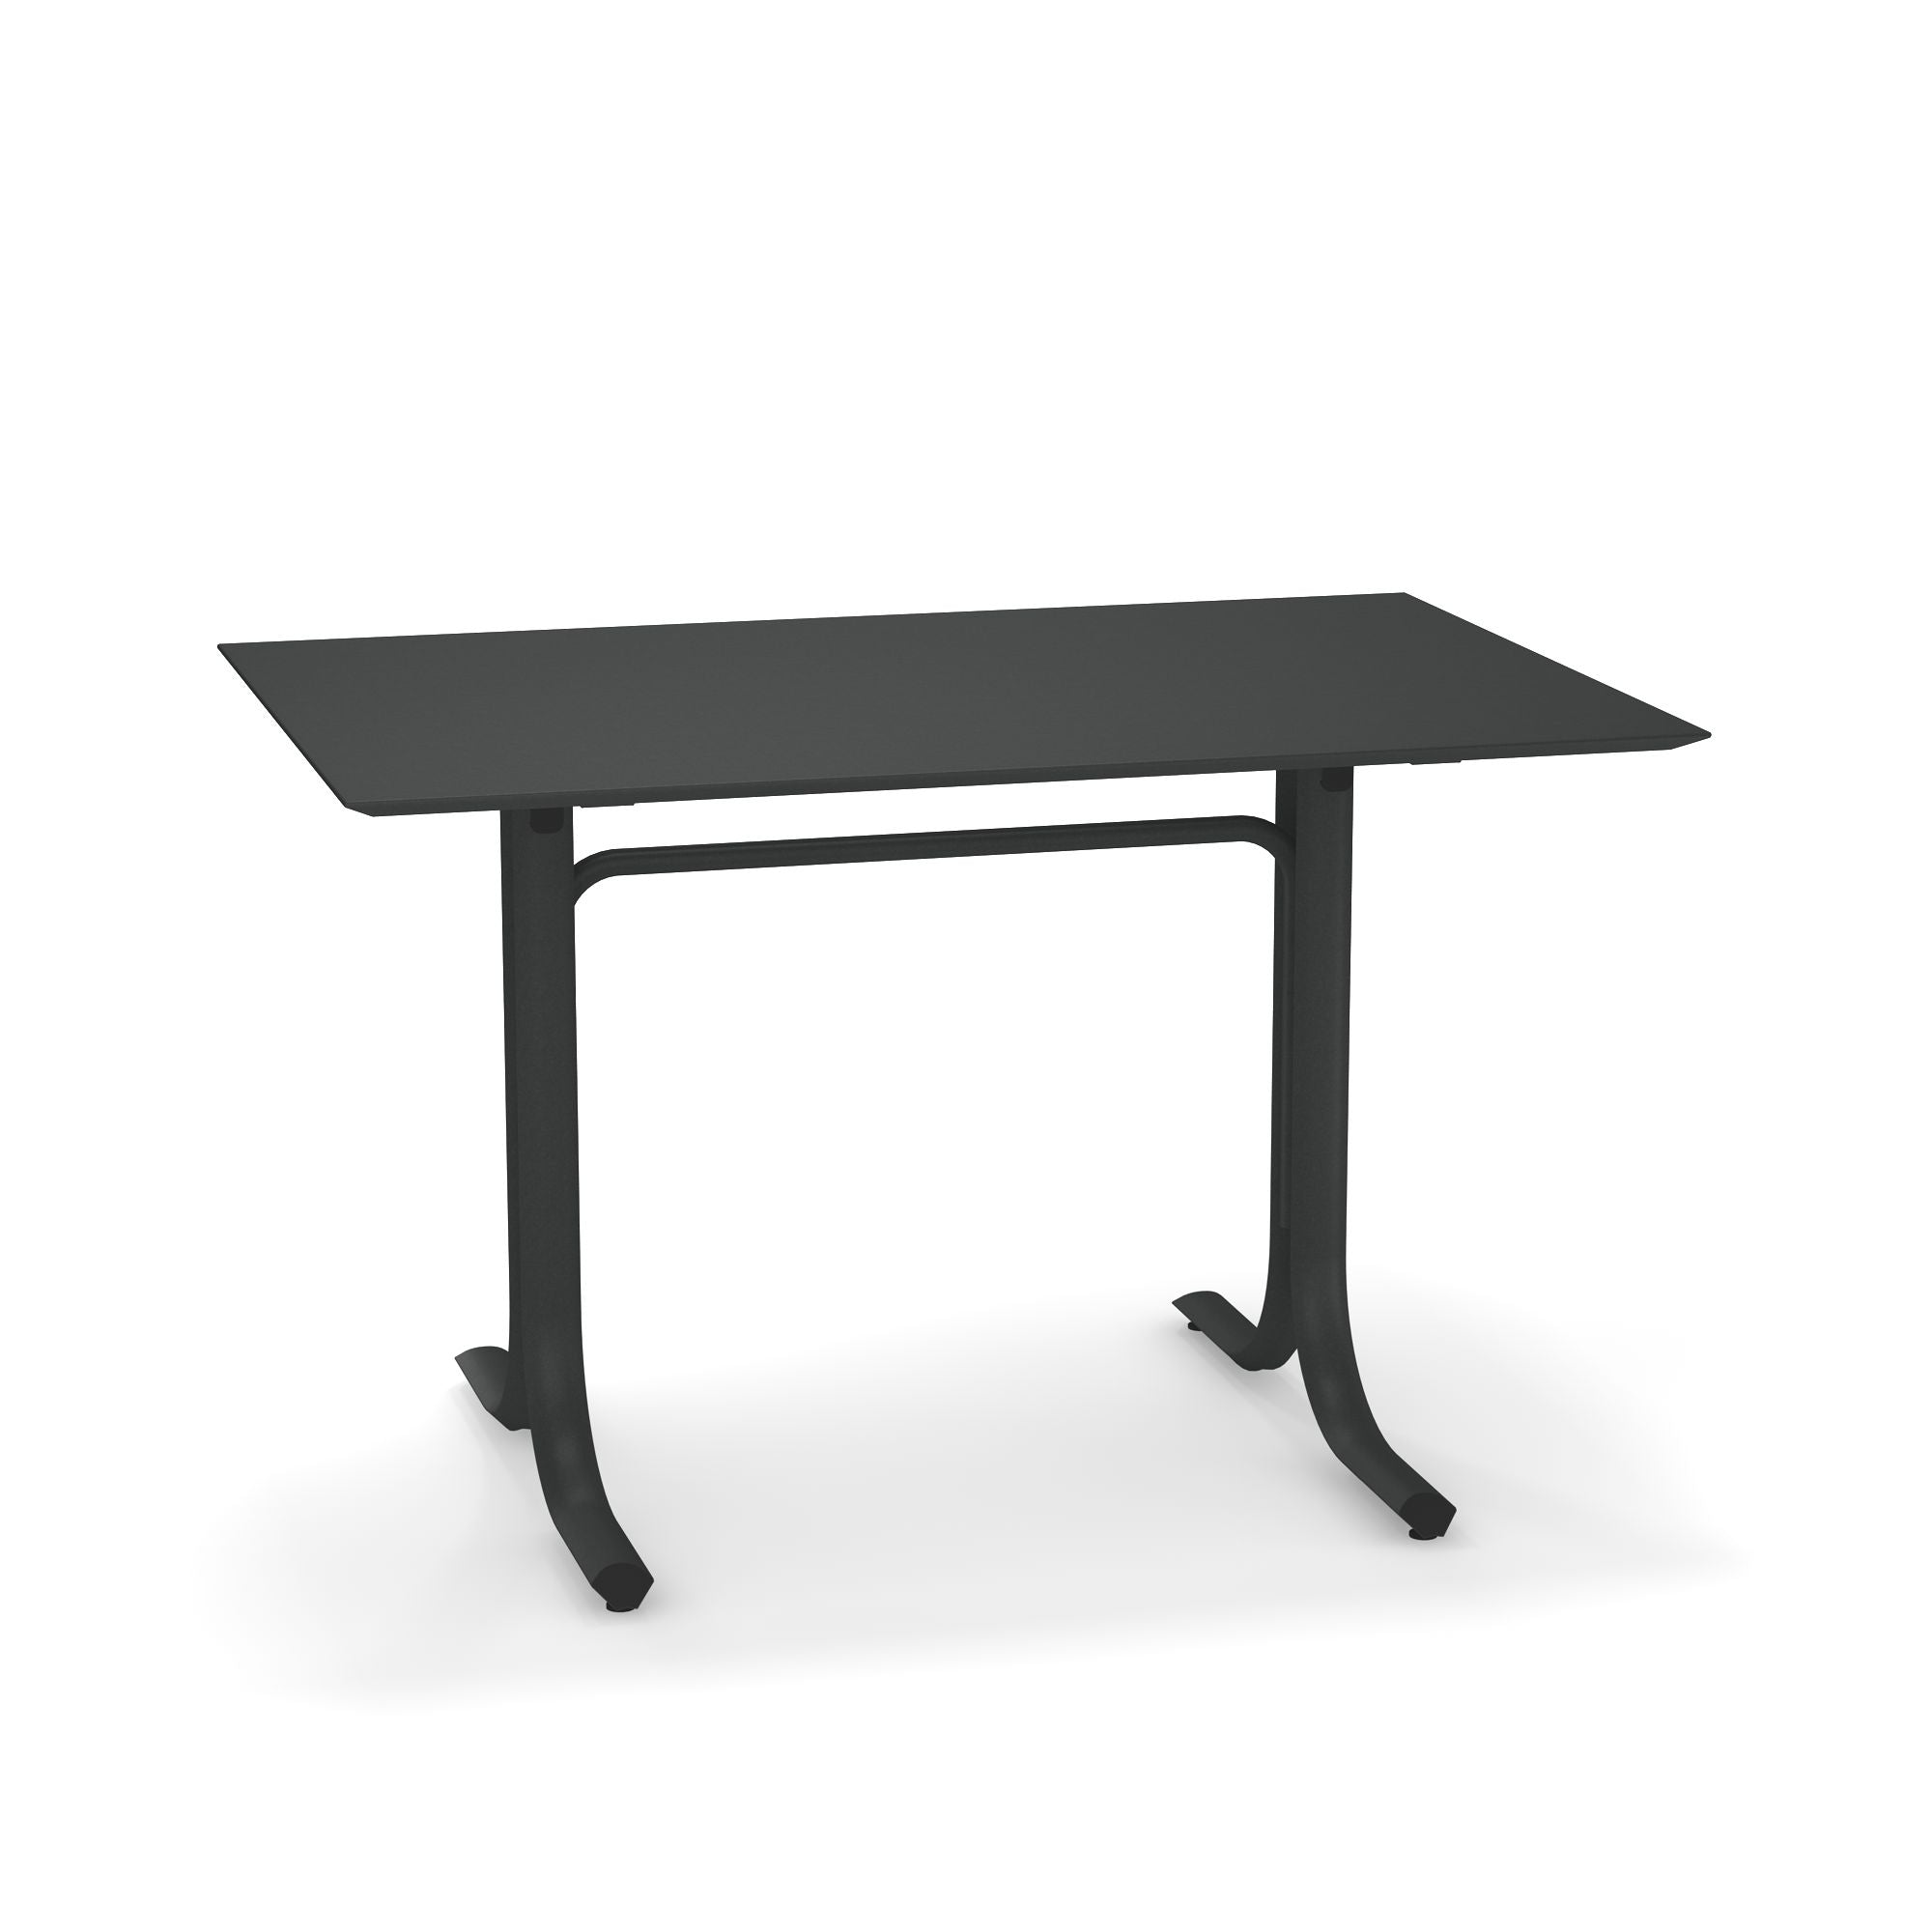 Table System #1133